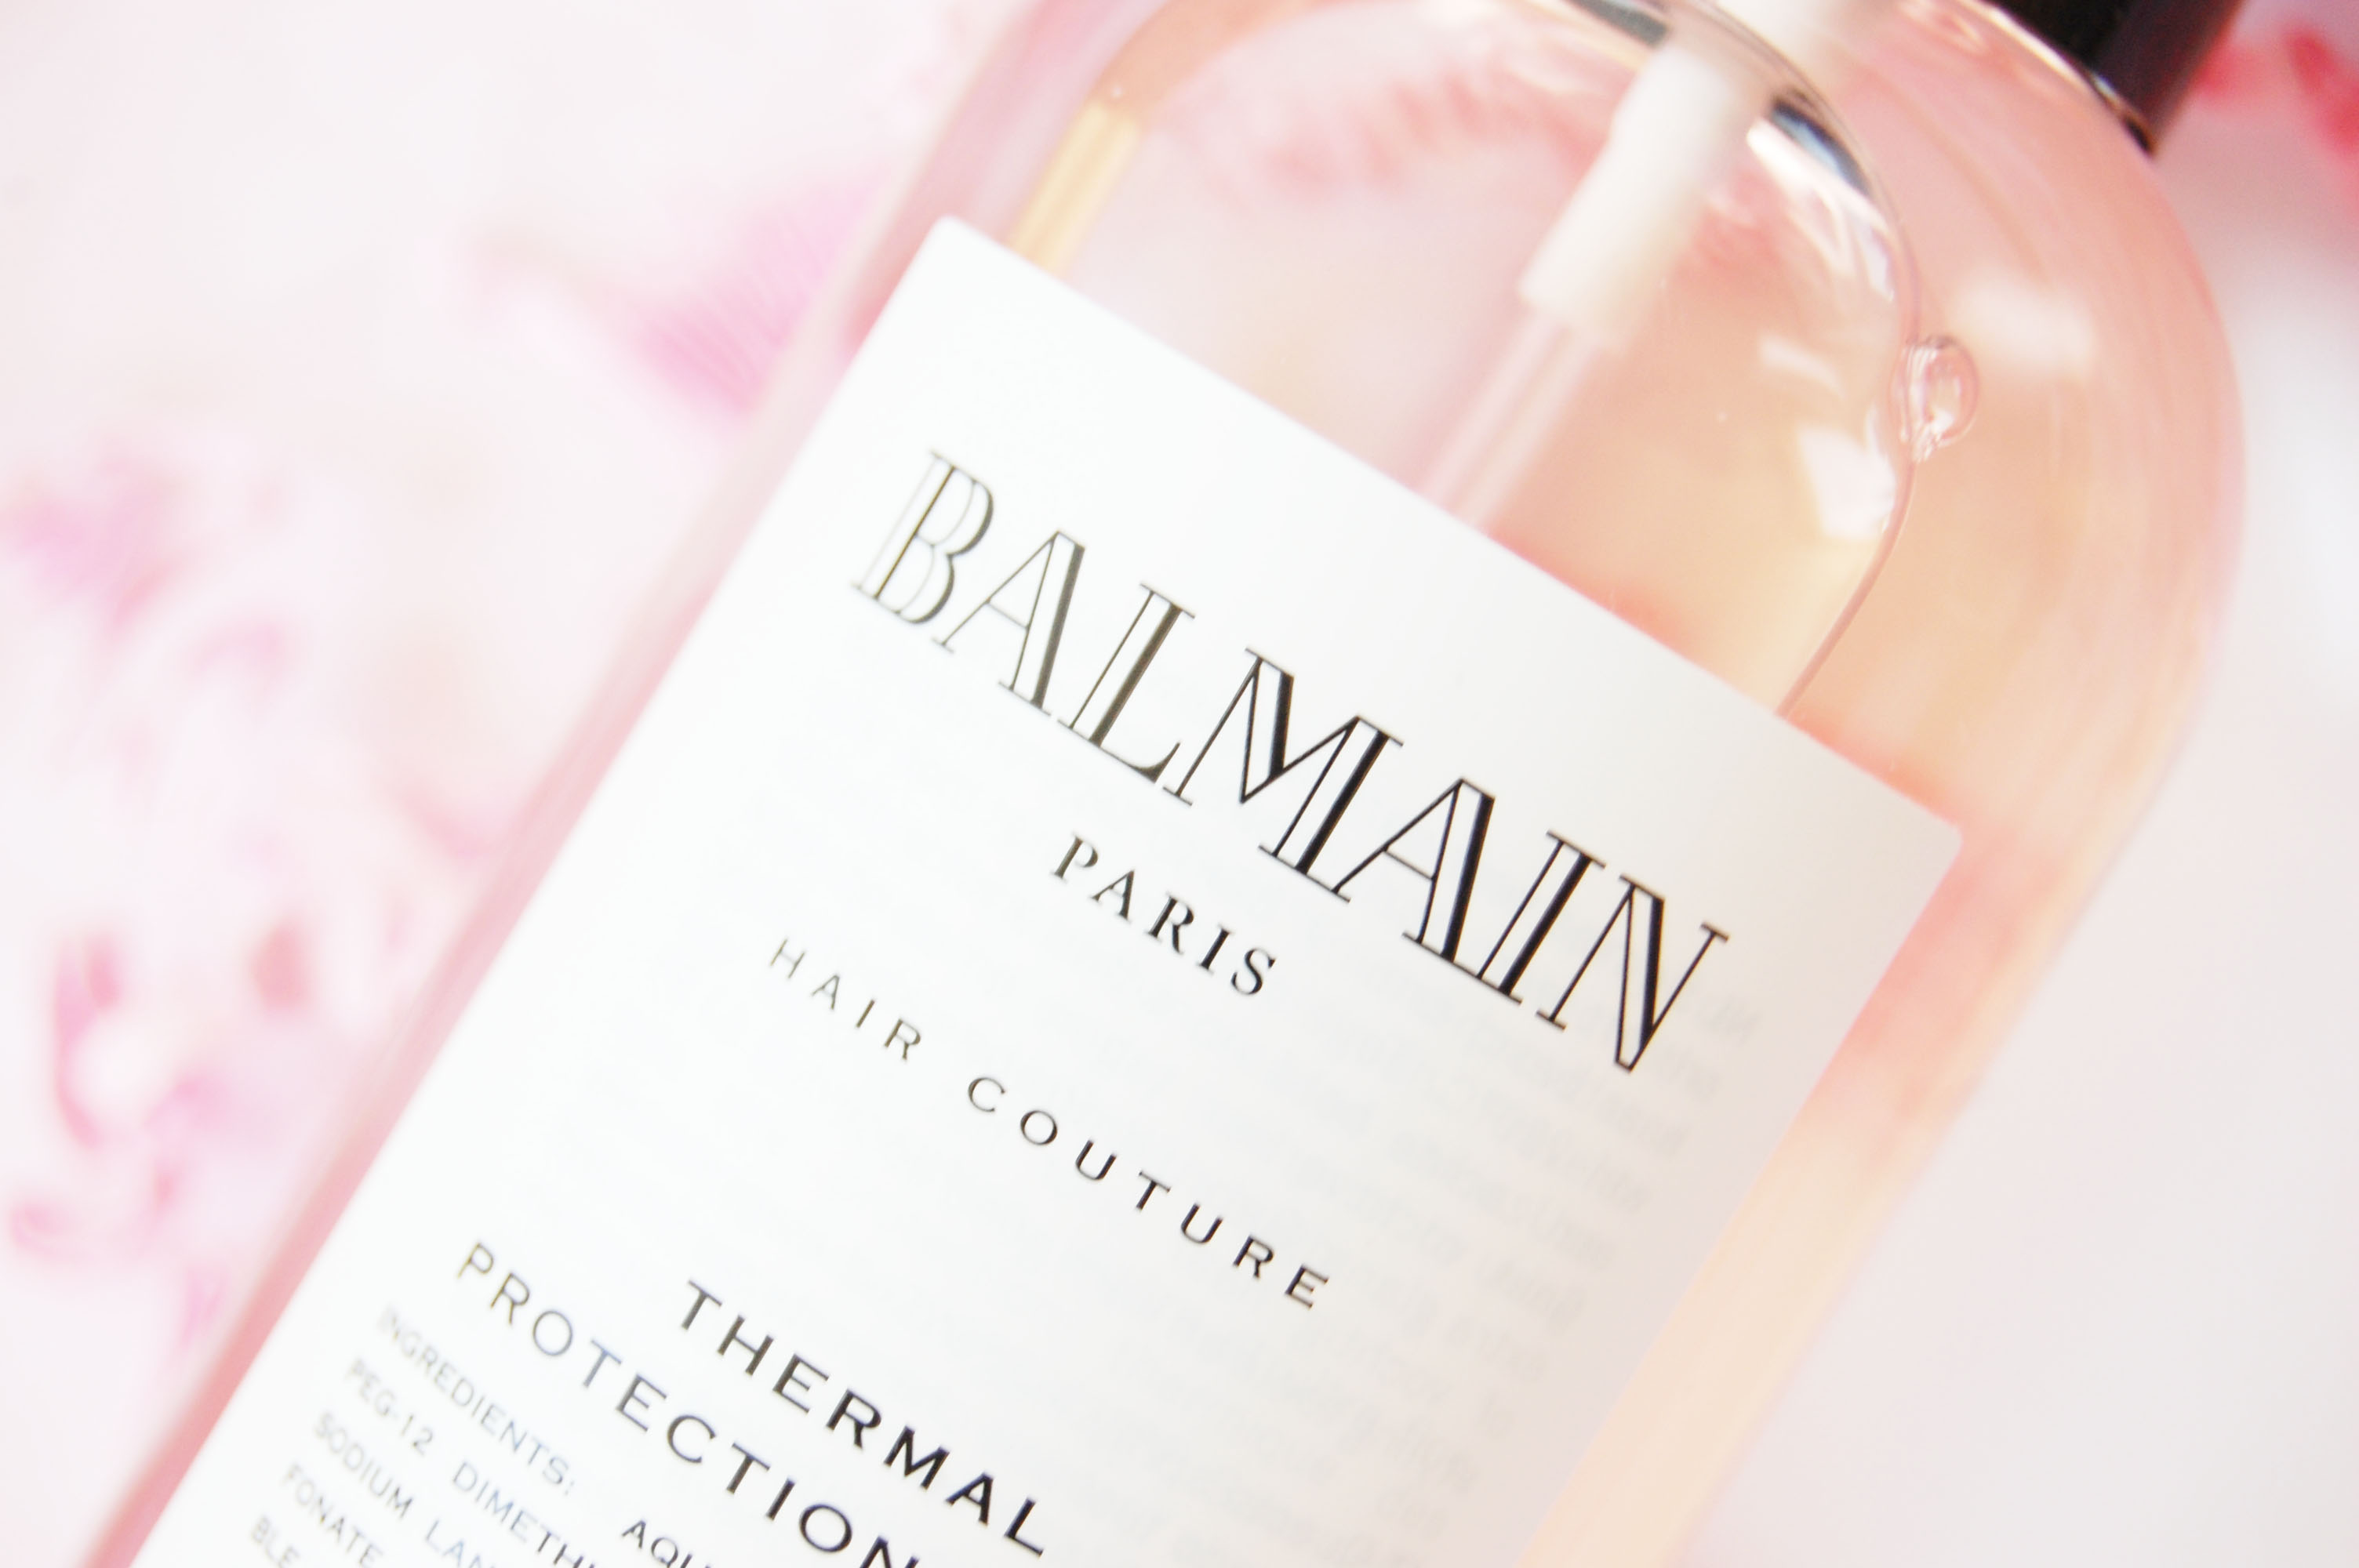 Balmain Hair Couture Thermal Protection Spray